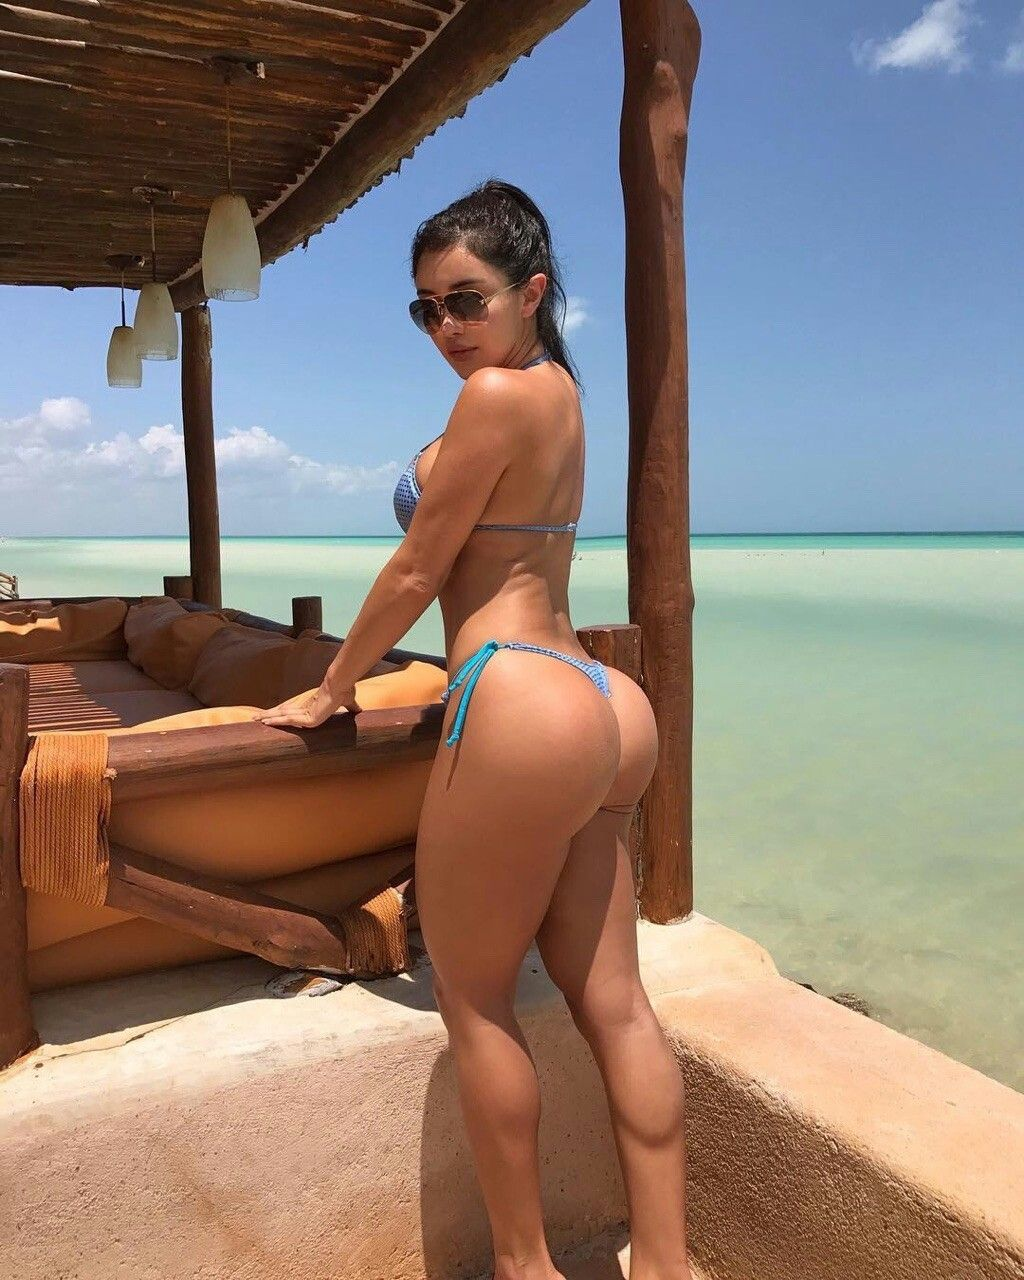 joselyn cano | great ass! | pinterest | latina, curves and woman